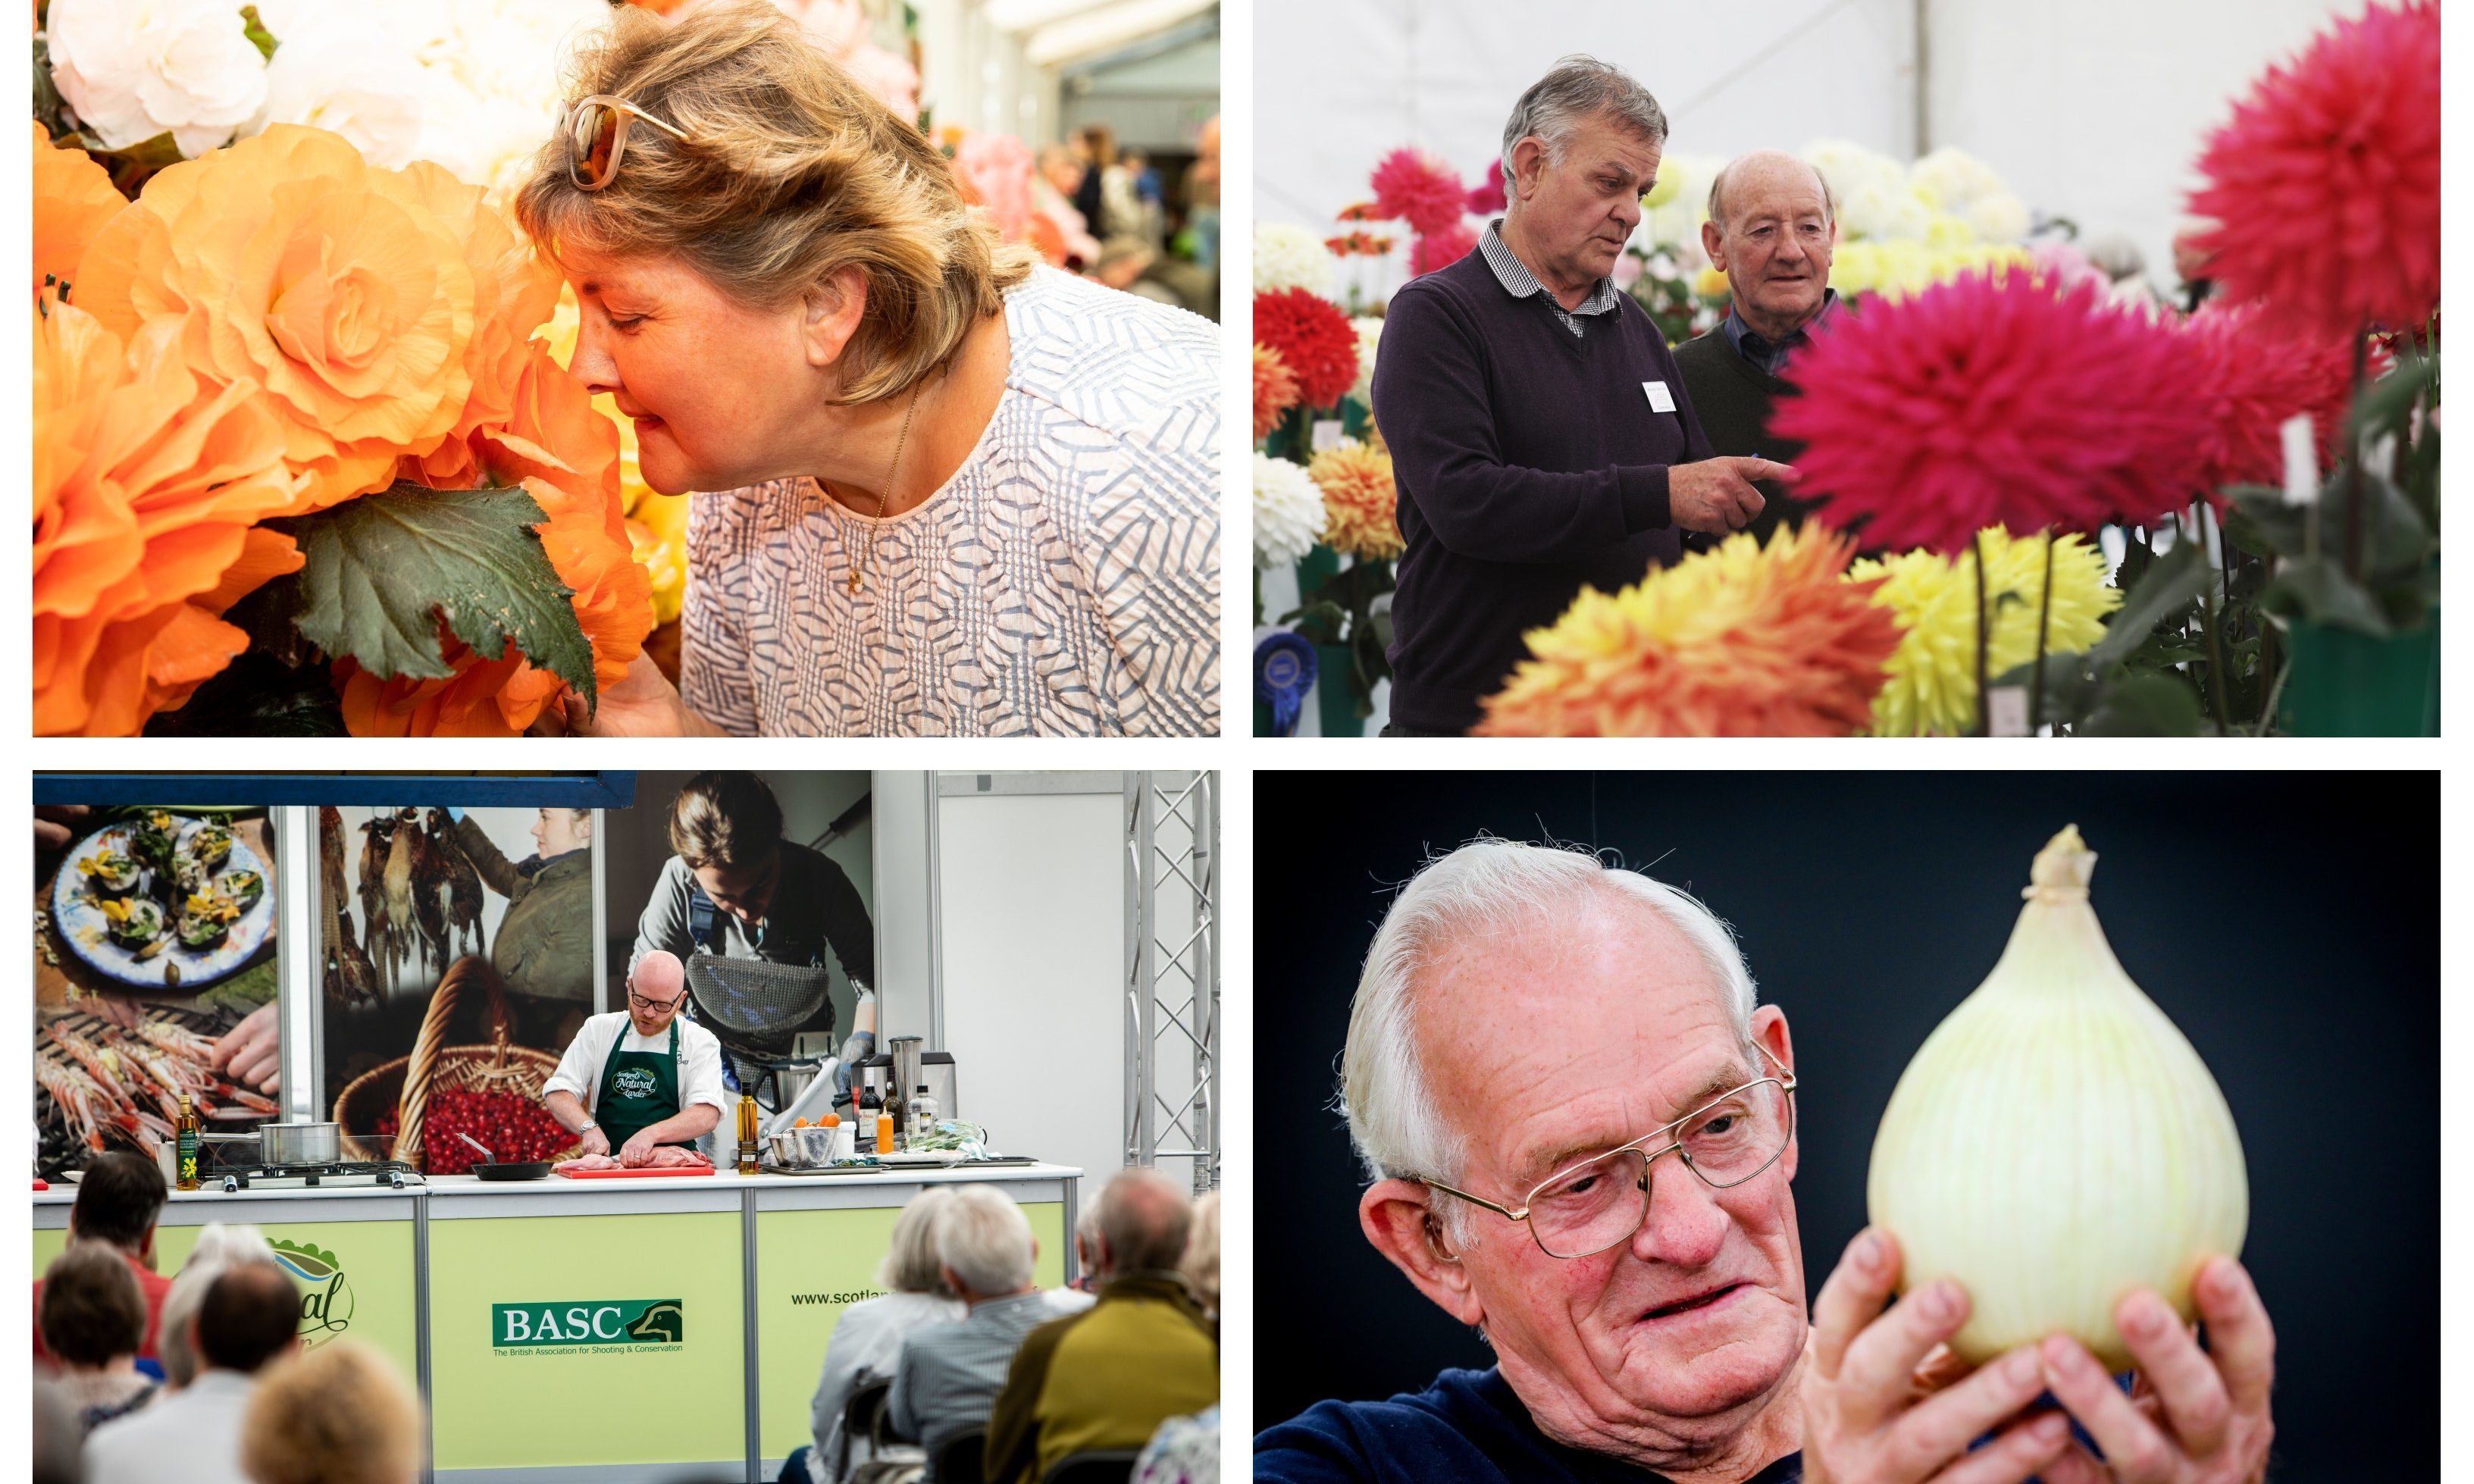 Day one of the Dundee Flower and Food Festival 2018.